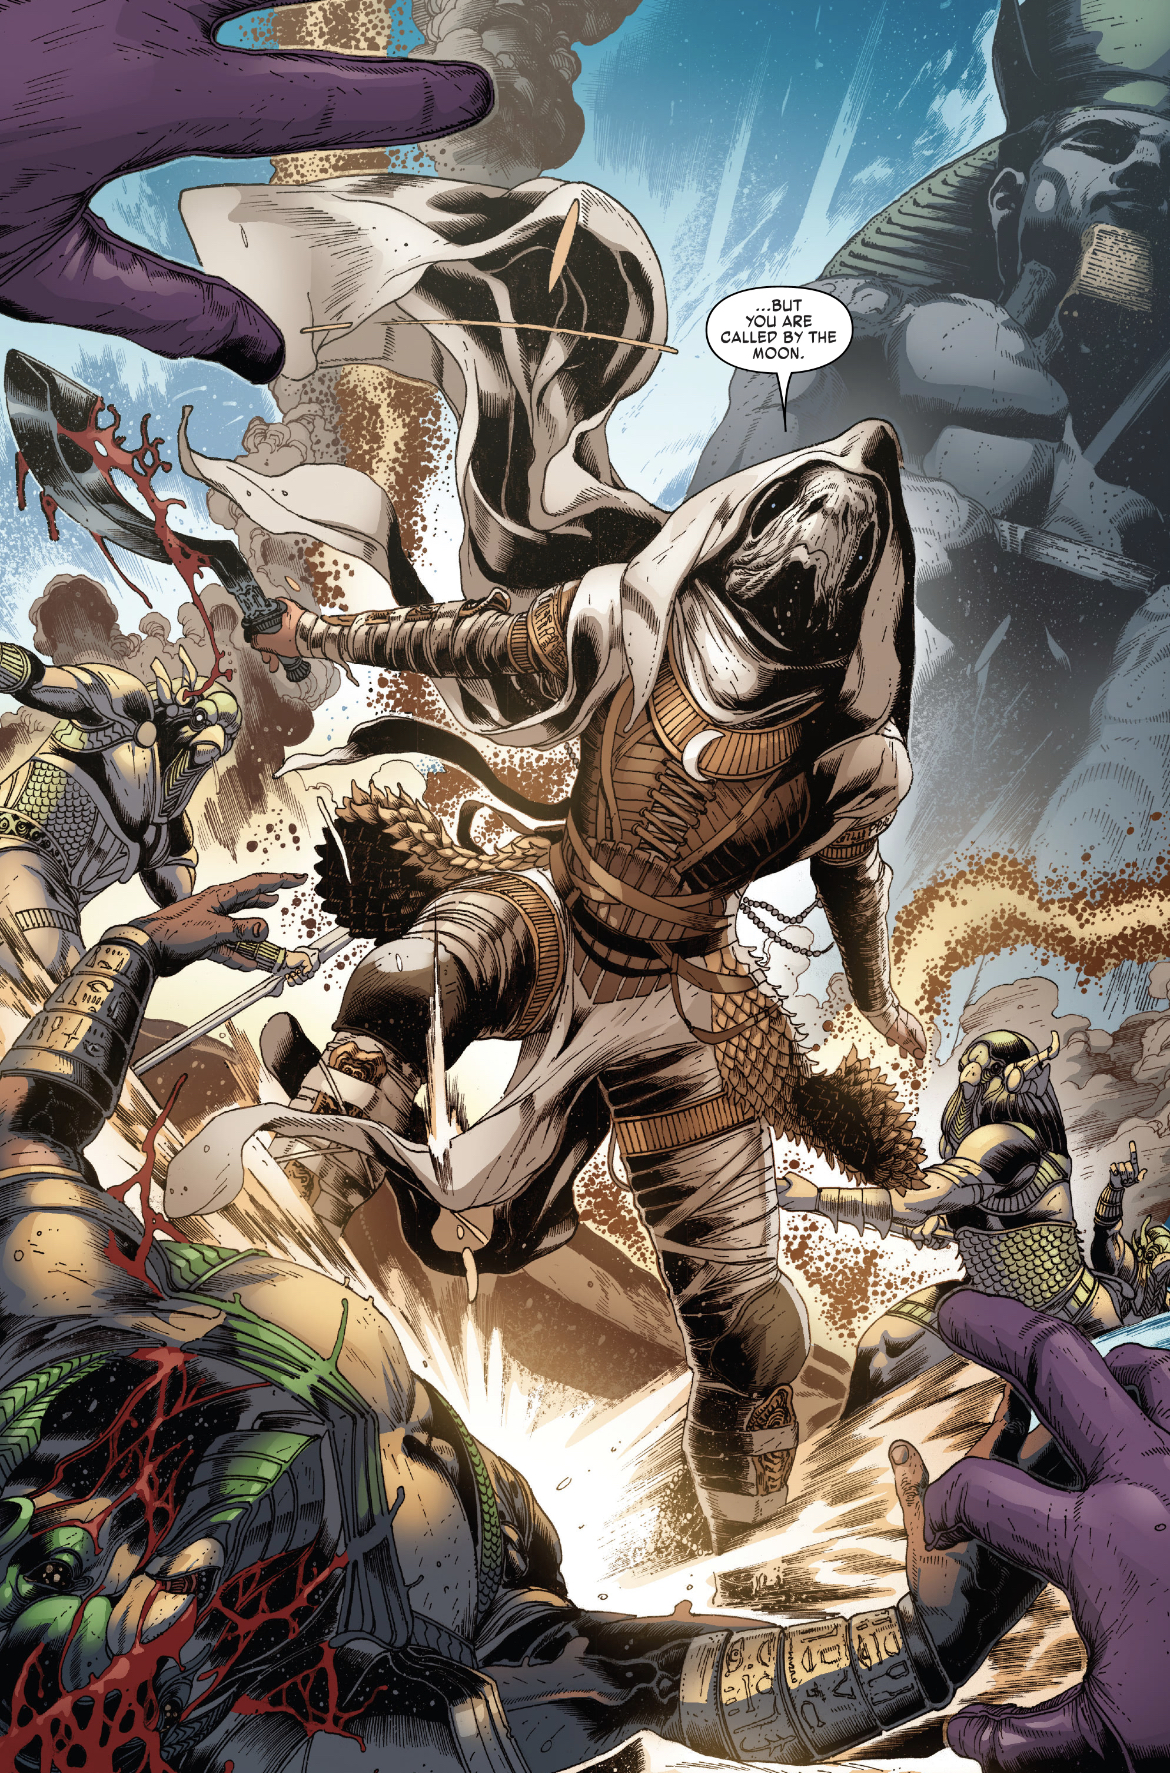 Moon Knight in Kang the Conqueror #2